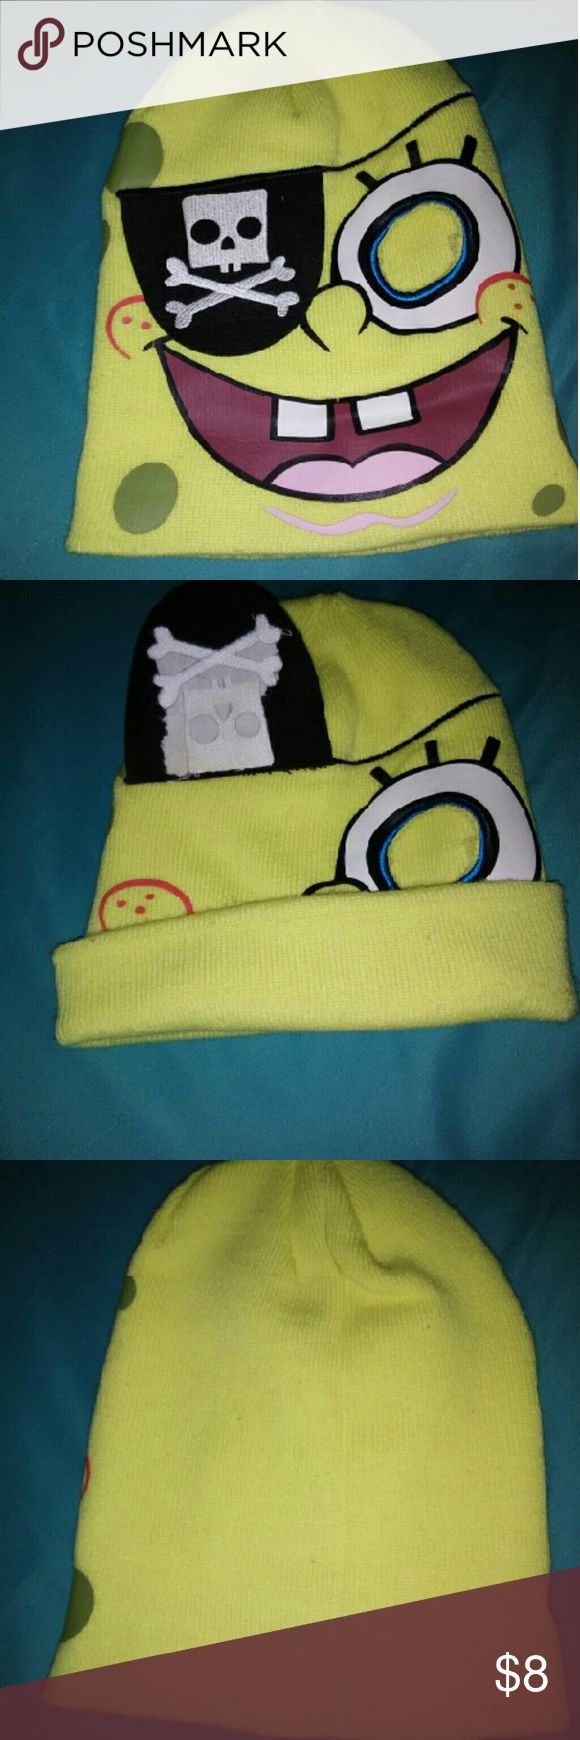 Nickelodeon SpongeBob squarepants winter hat Nickelodeon winter hat SpongeBob SquarePants  winter cap cool flip patch idea just for fun your ears,and heat will still be kept warm just a cool added idea to show to friends one size fits most Nickelodeon Accessories Hats